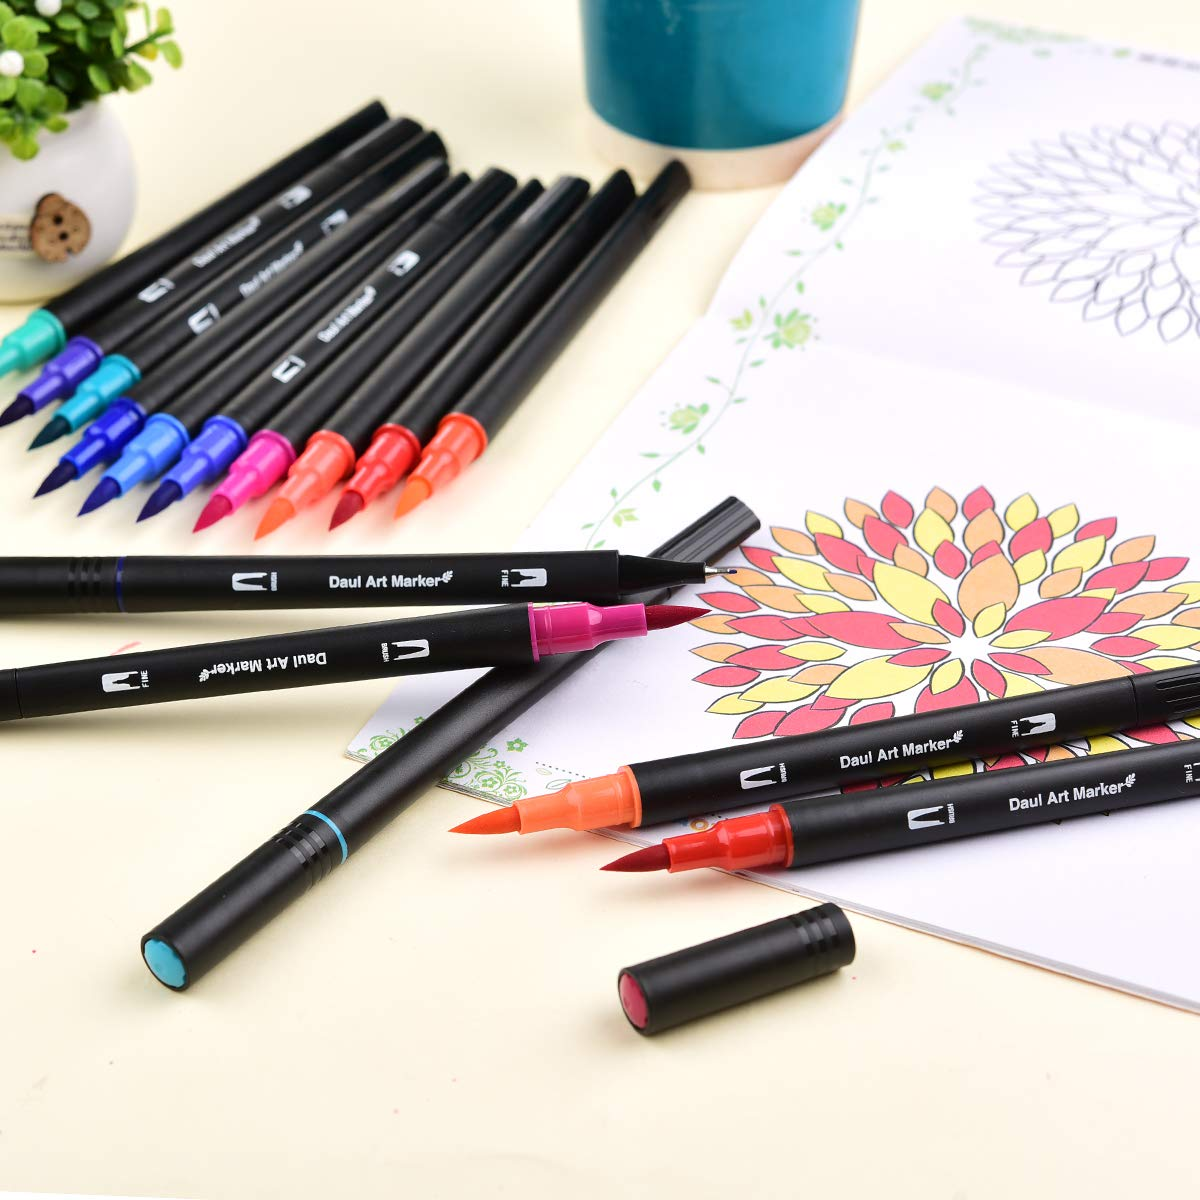 Southsun Art Dual Tips Coloring Brush Fineliner Color Pens, 72 Colors of Water Based Planner Pens for Calligraphy Drawing Sketching Coloring Book Bullet Journal Art Projects, Back to School Supplies